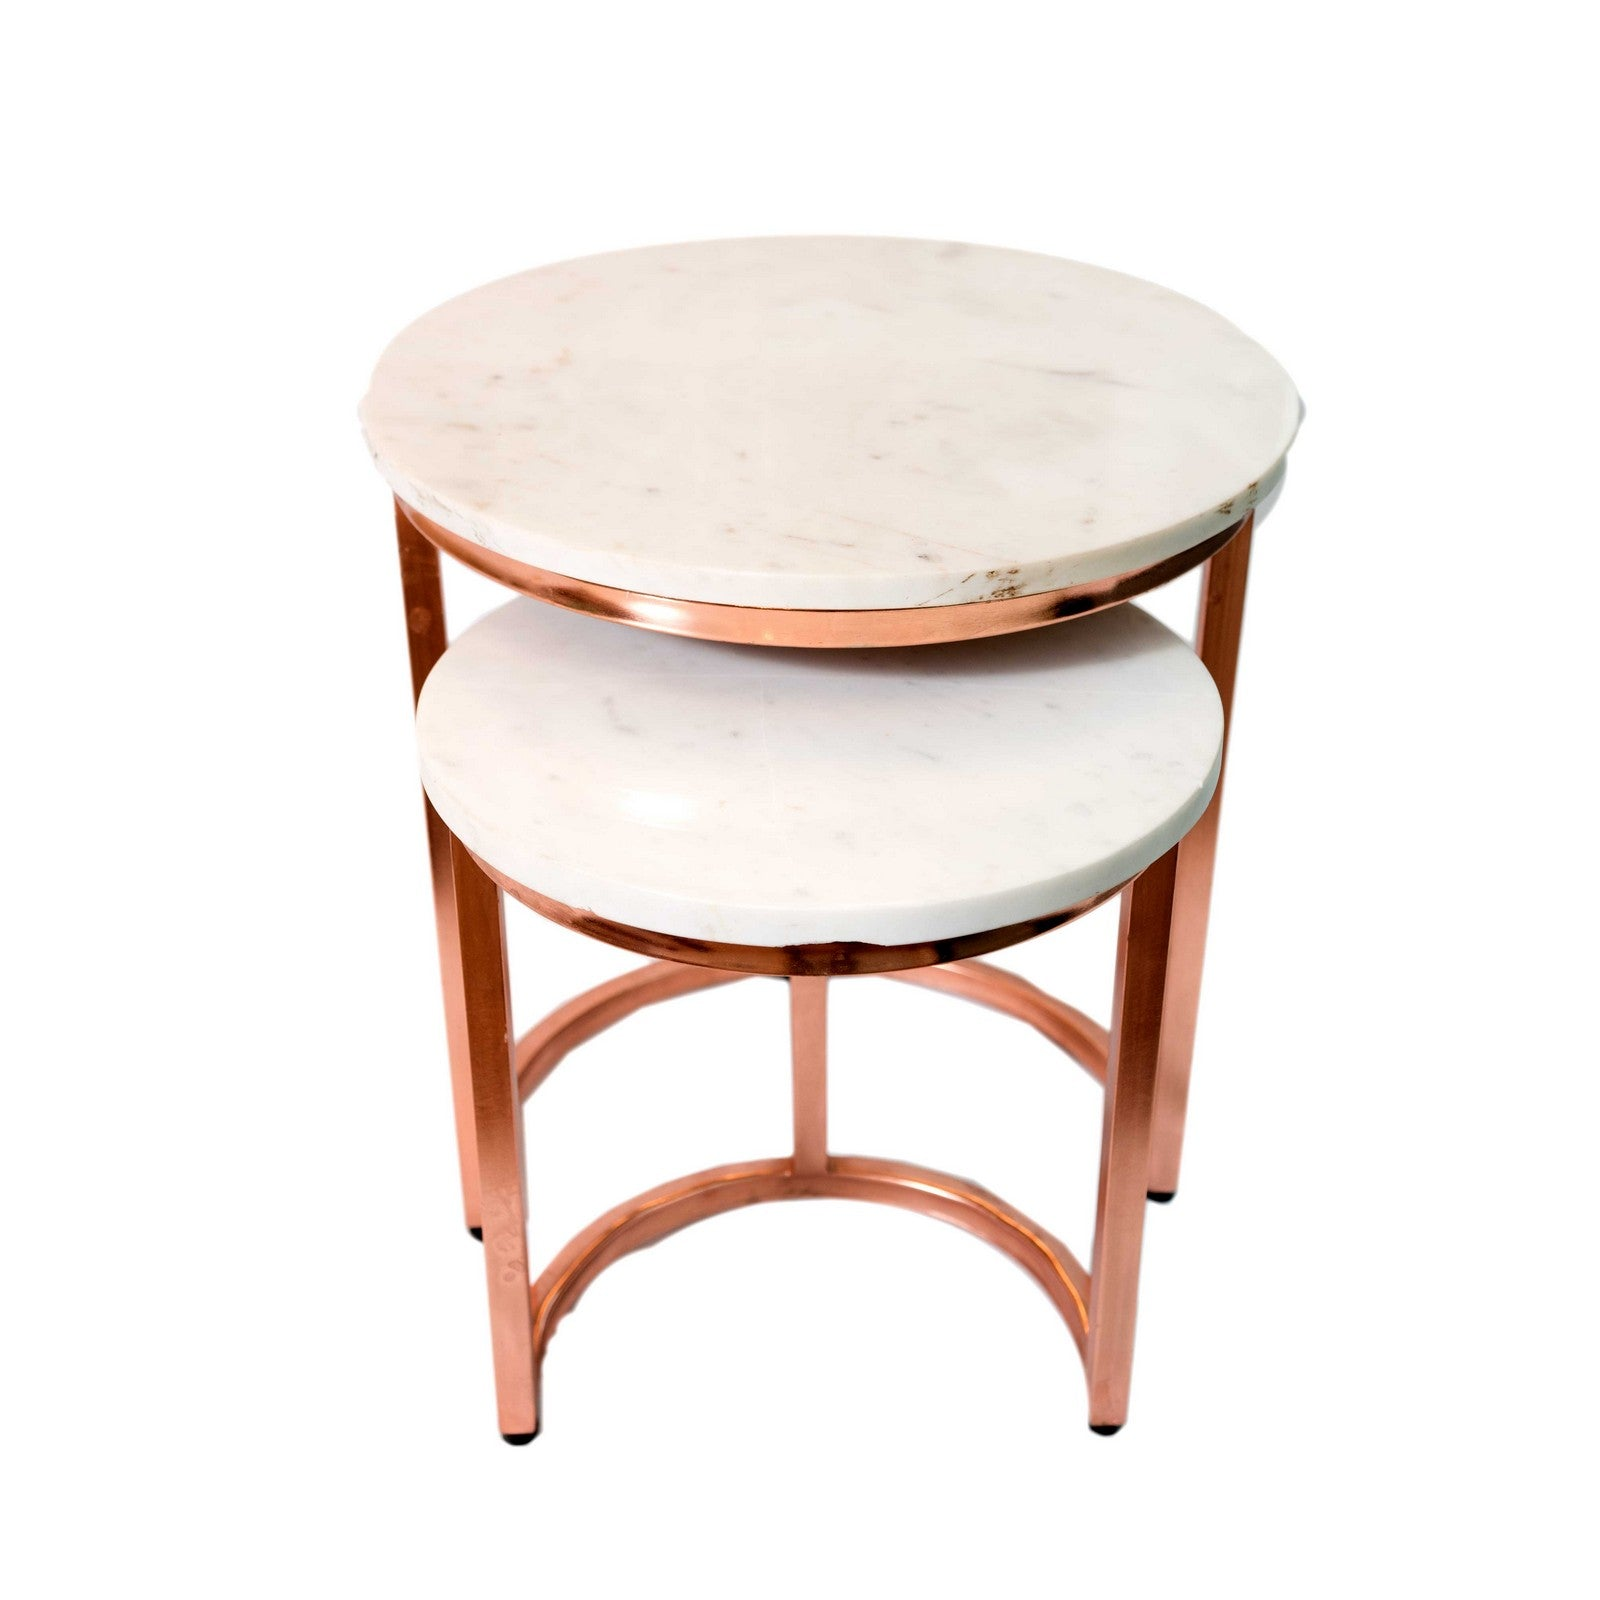 Marble Coffee Table With Copper Legs: Marble Round Coffee Table With Brass Legs (Set Of 2